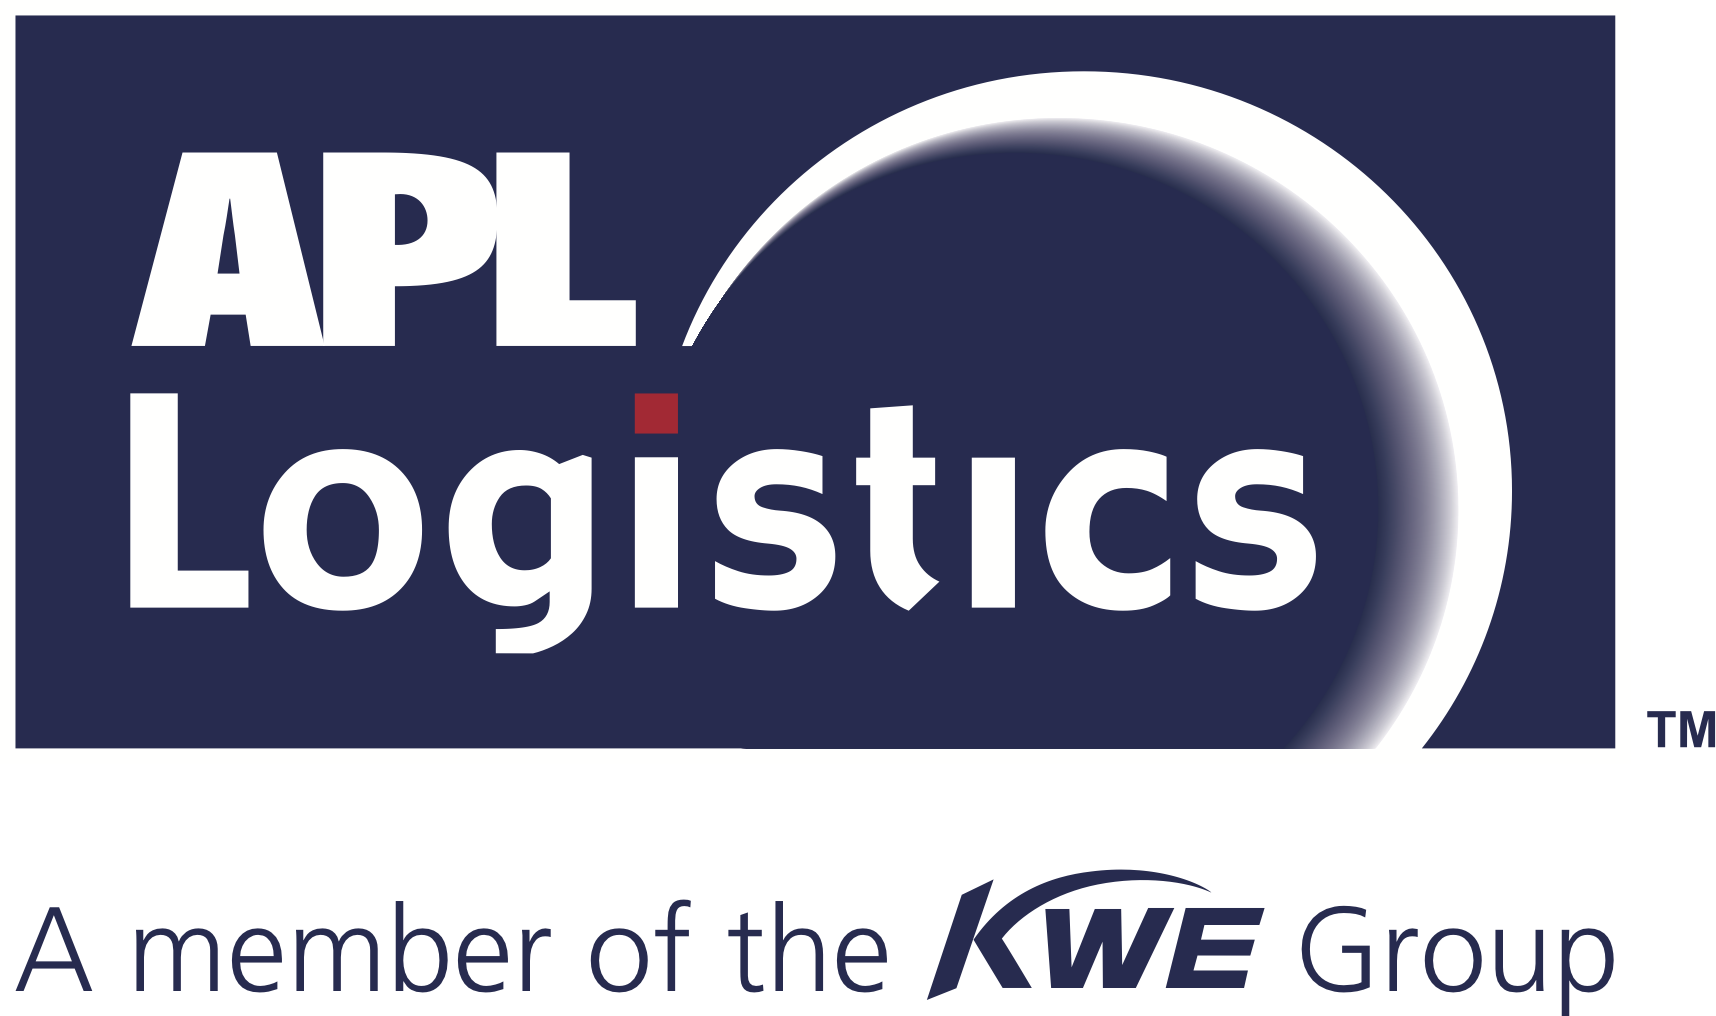 APL Logistics logo with KWE.png